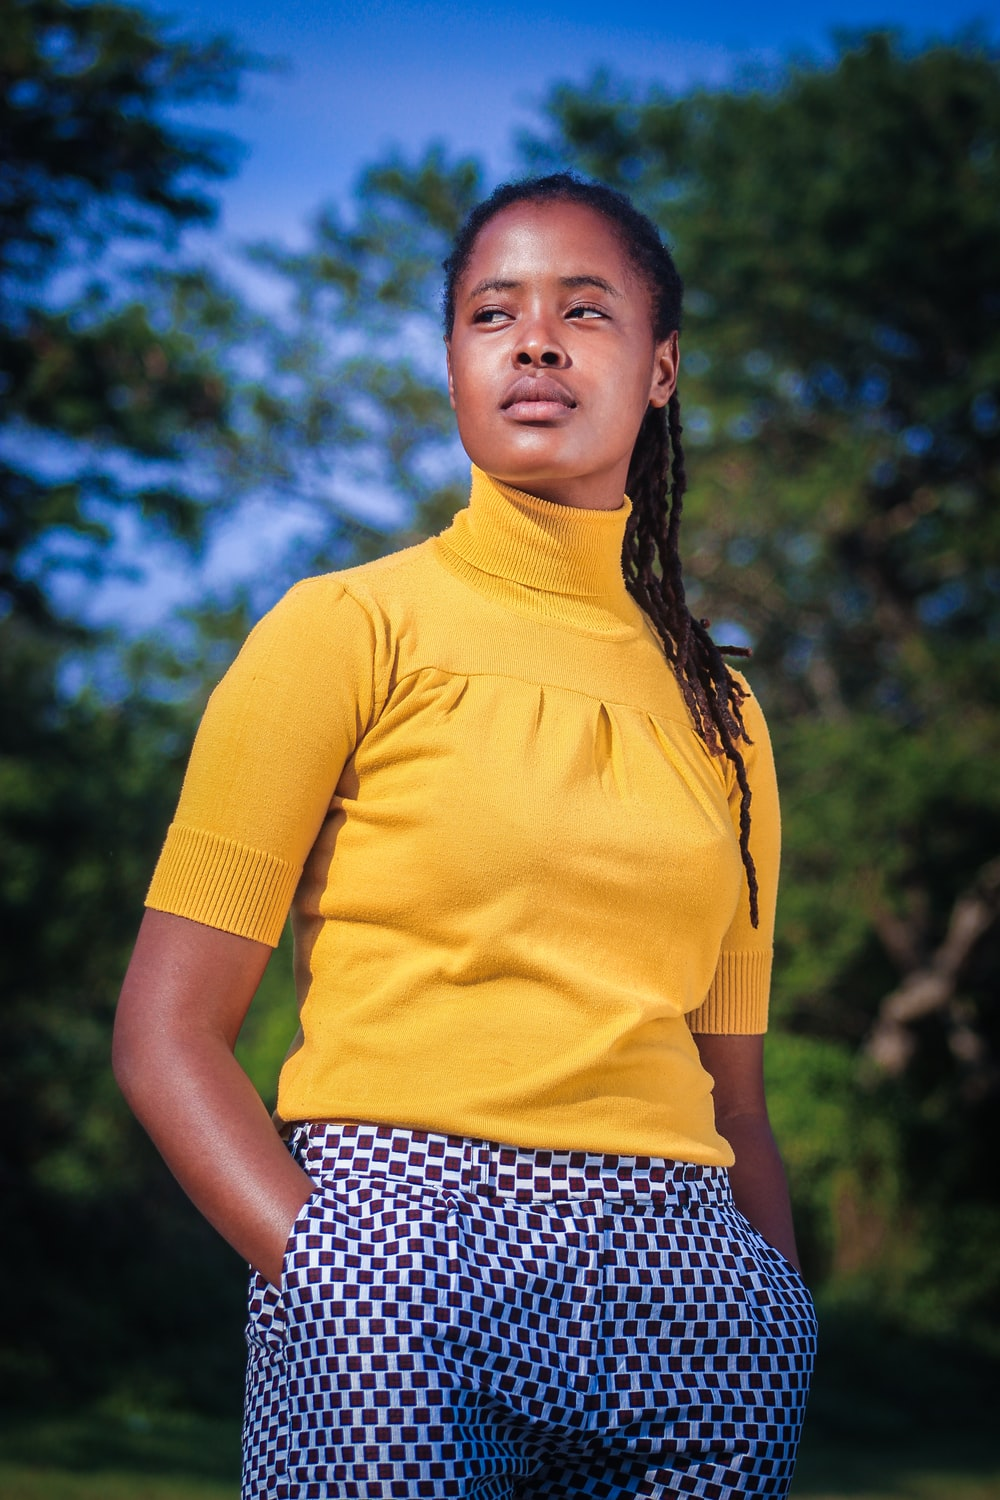 woman in yellow crew neck t-shirt and black and white polka dot skirt